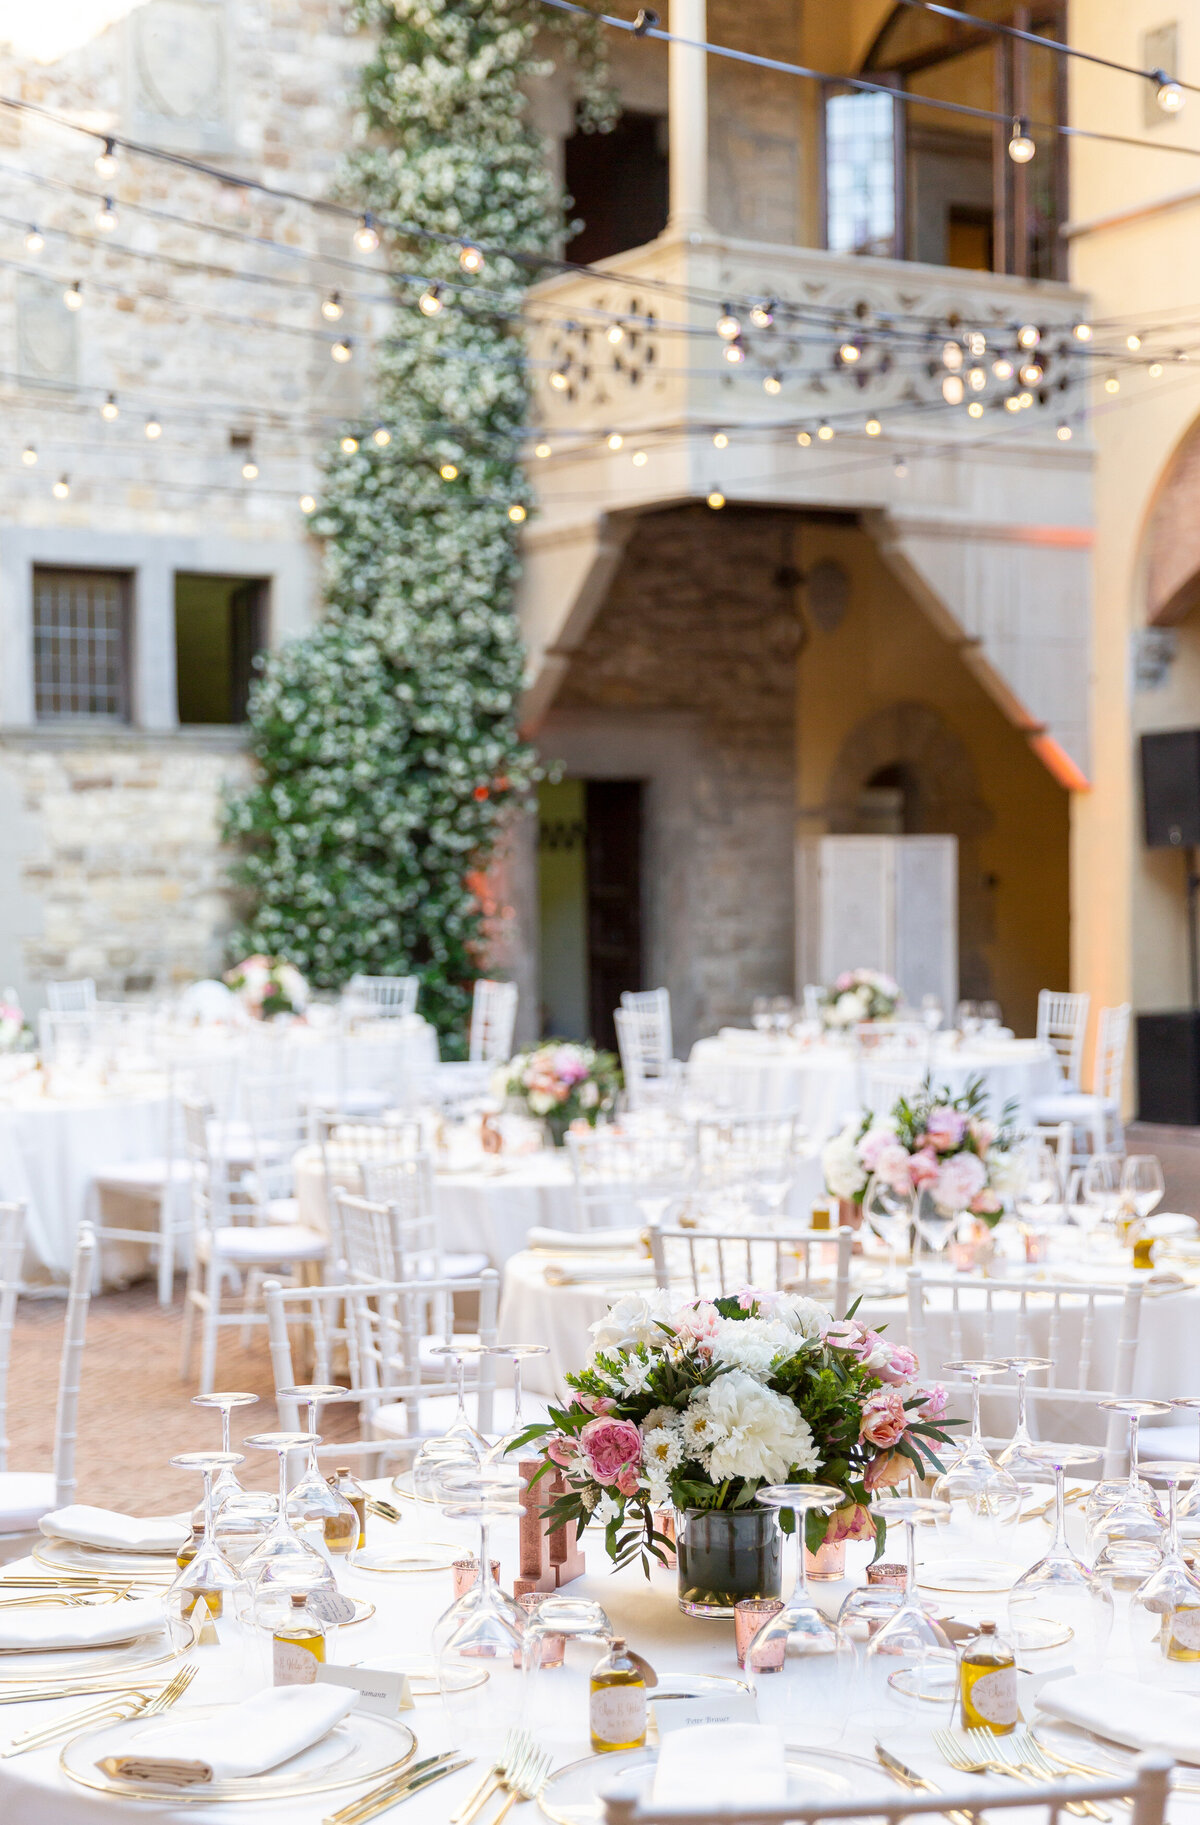 Tuscany_Italy_0204_Helga_Marc_Wedding_2371